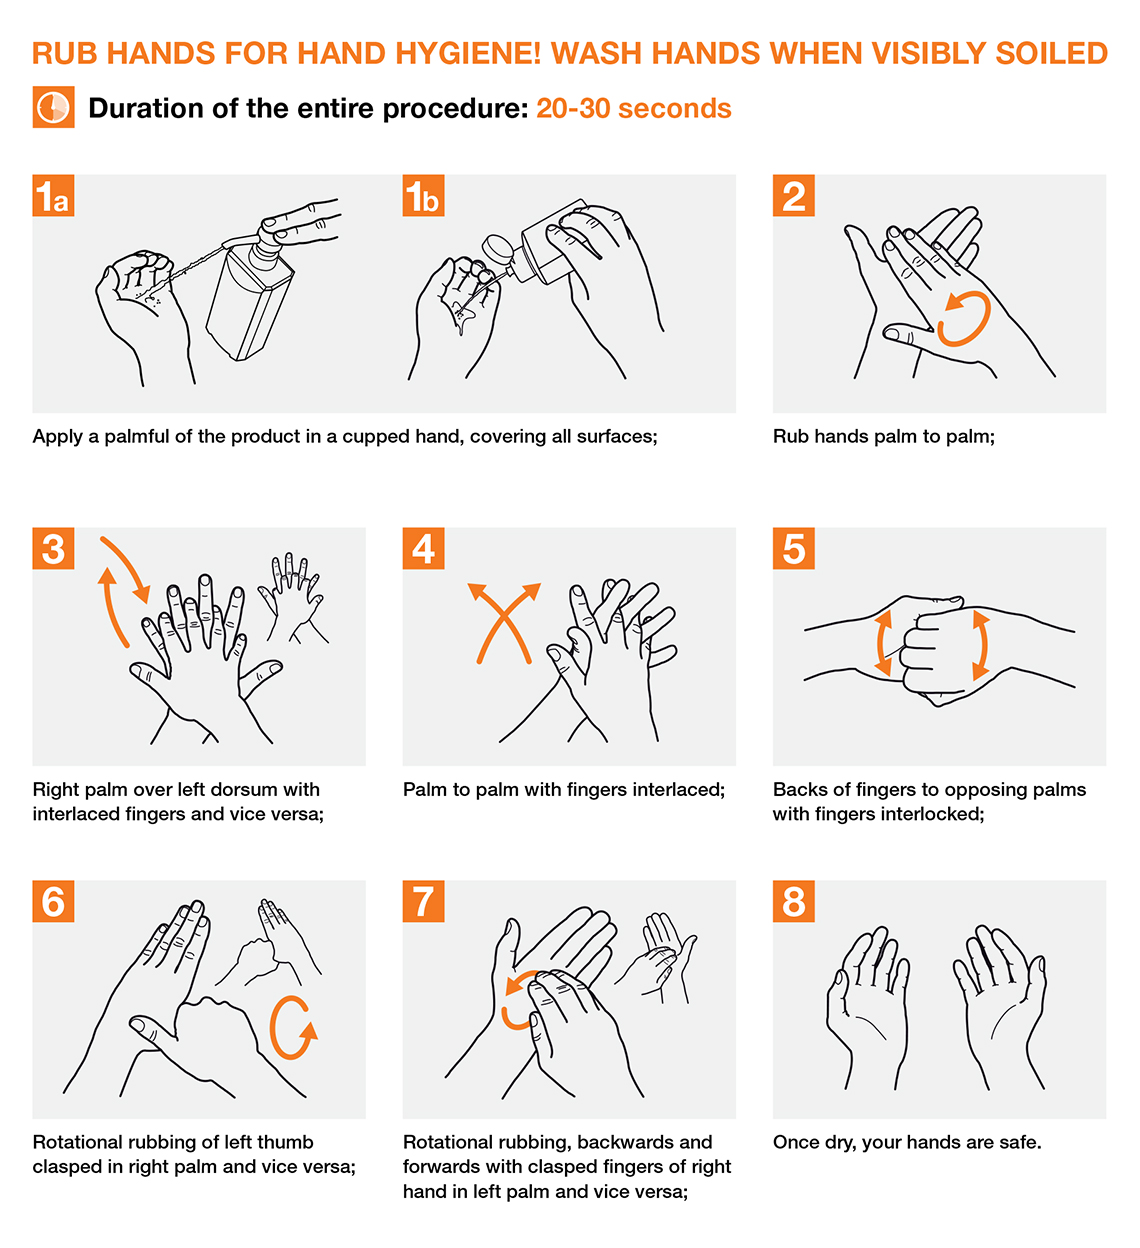 infographic showing a series of nine diagrams demonstrating proper hand hygiene